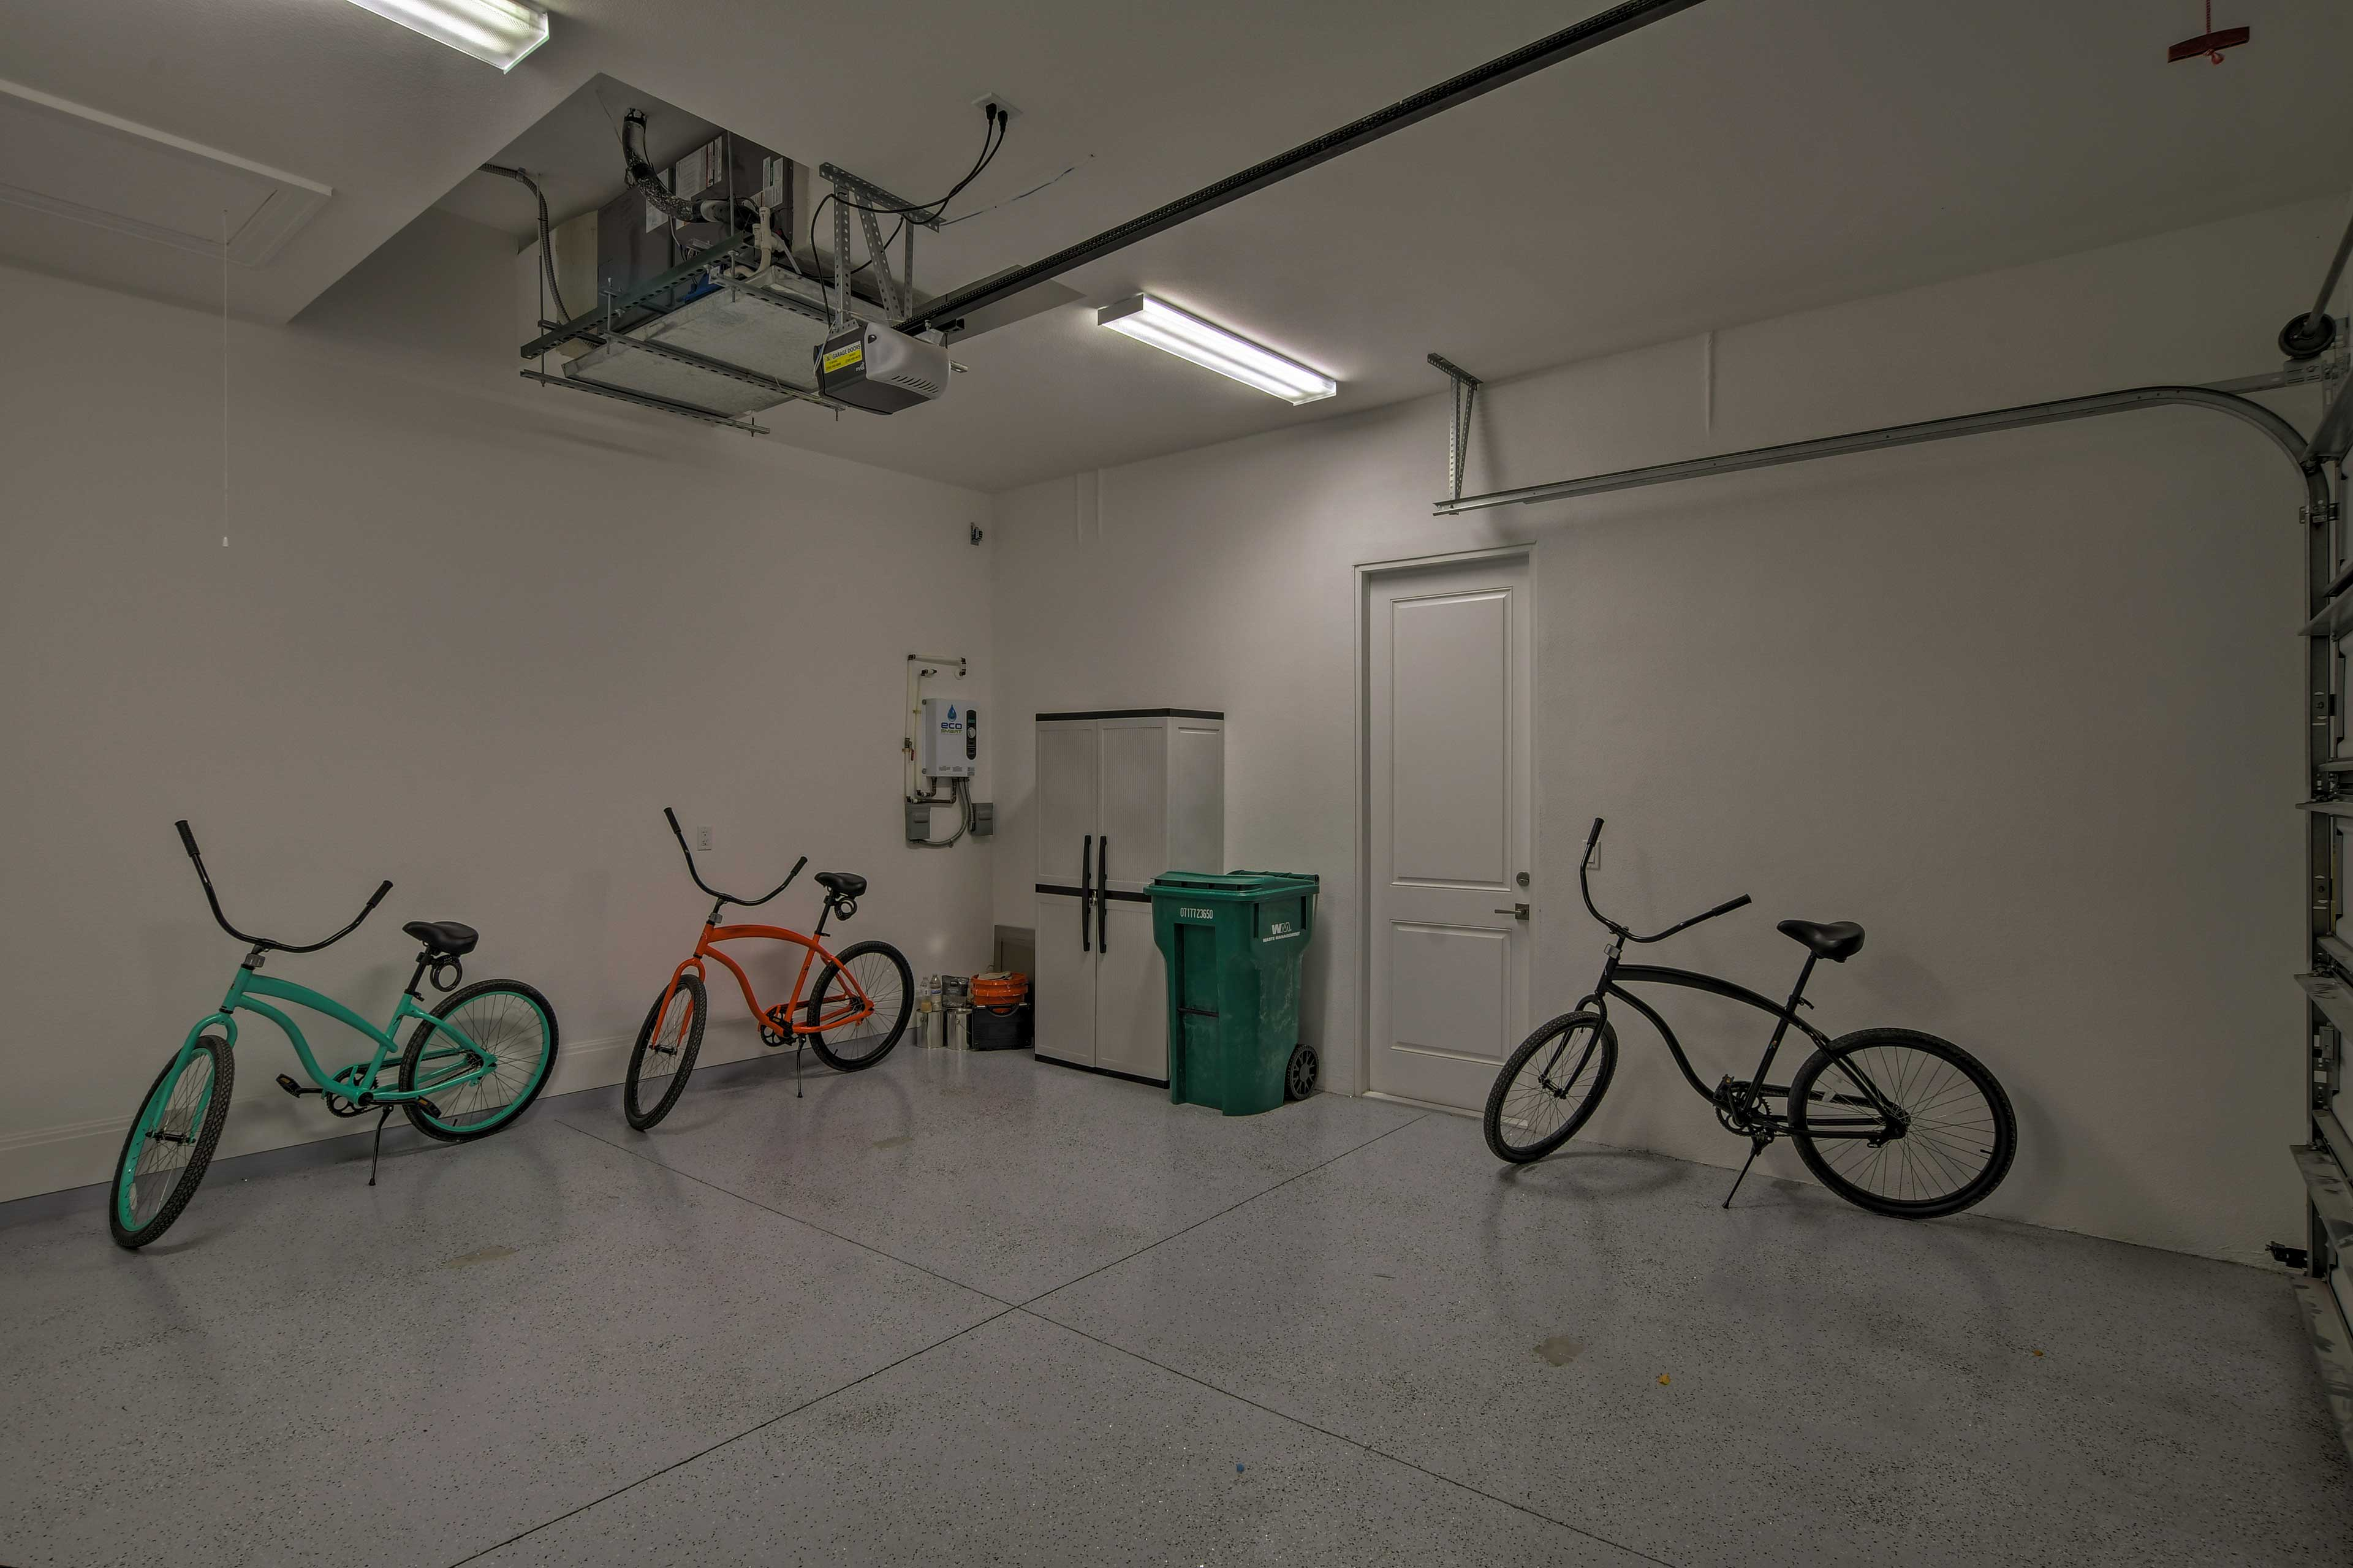 Park 2 vehicles in the garage!